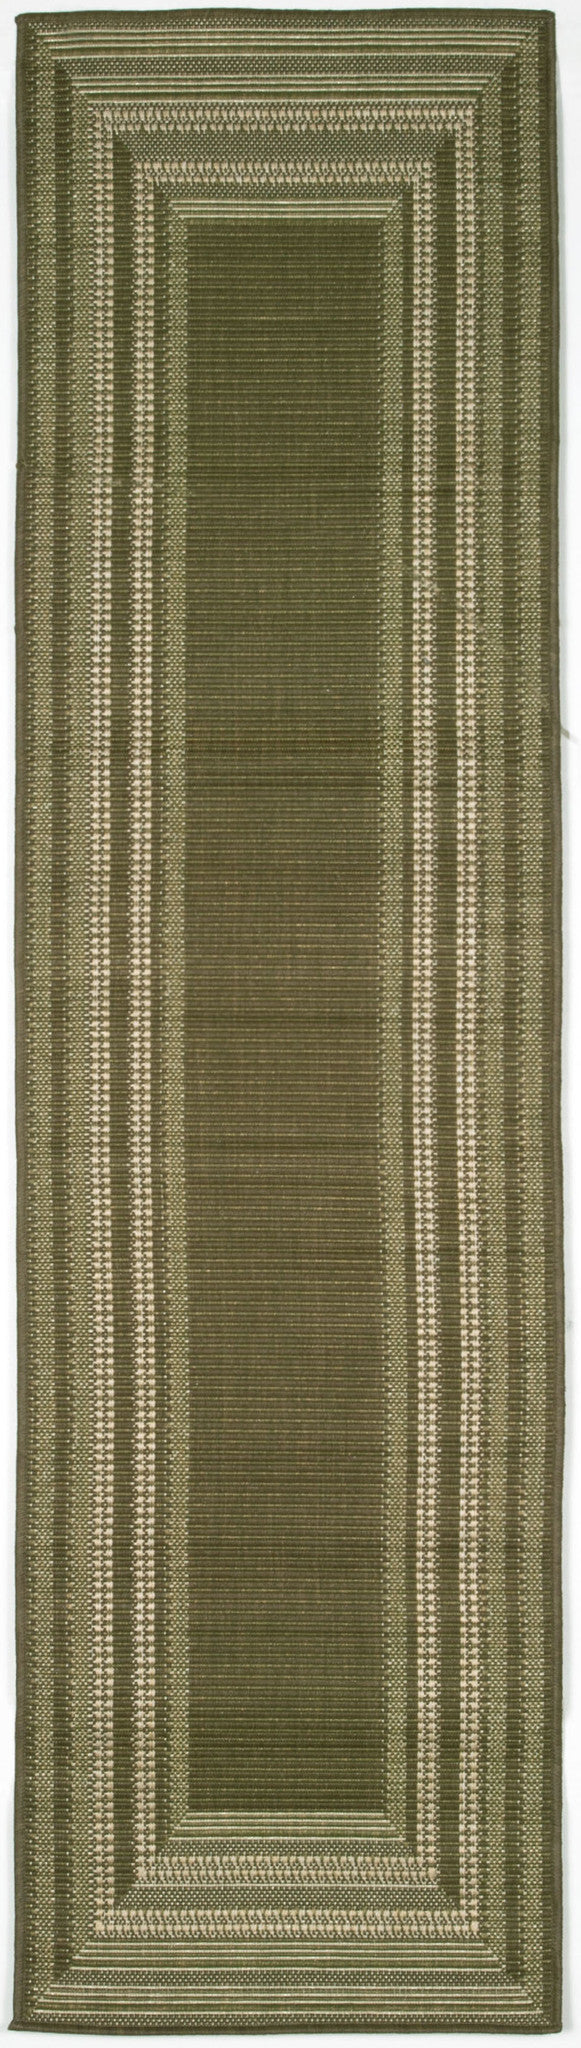 "Etched Border Moss 23"" x 7'6"" Indoor/Outdoor Flatweave Rug"